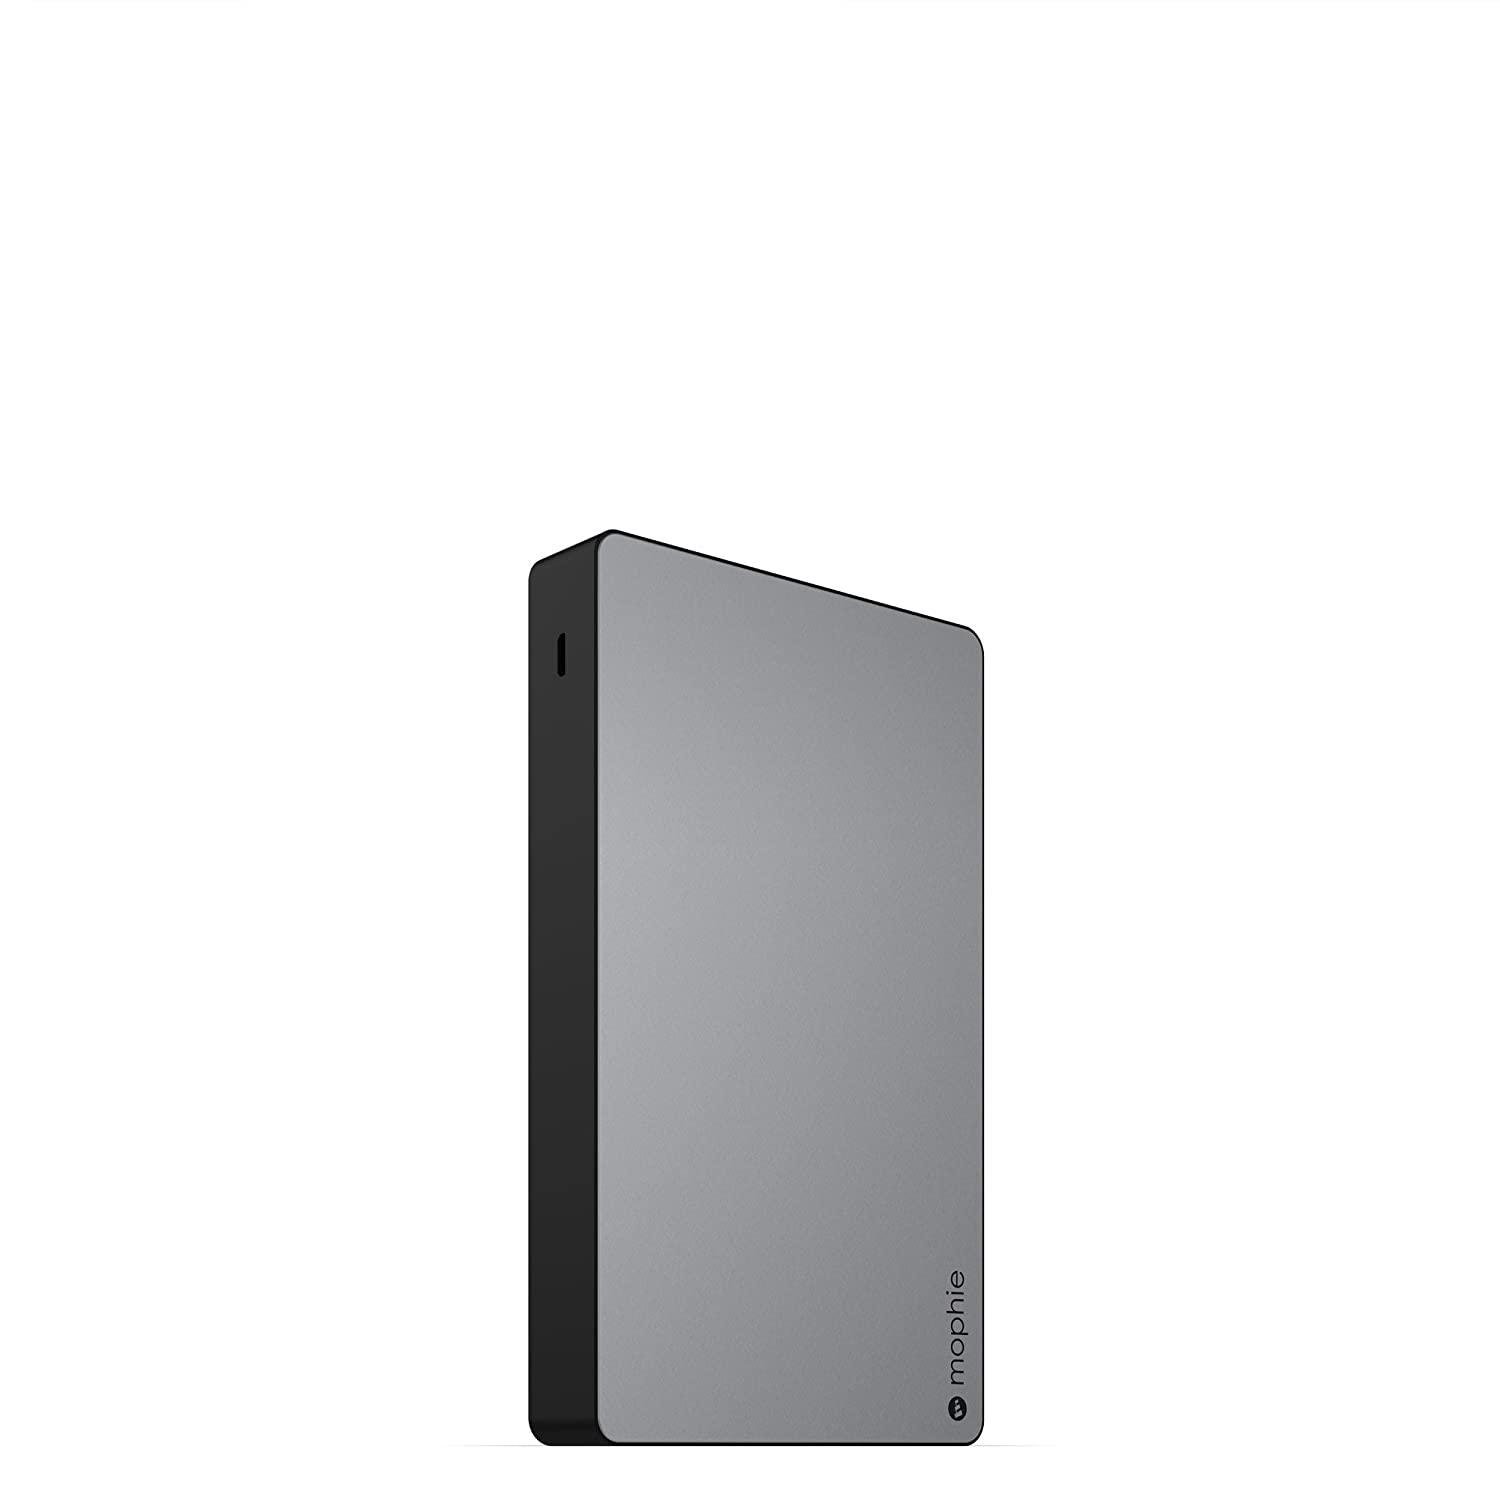 Mophie powerstation xxl external battery for universal smartphones mophie powerstation xxl external battery for universal smartphones and tablets 20000mah space grey amazon electronics fandeluxe Choice Image